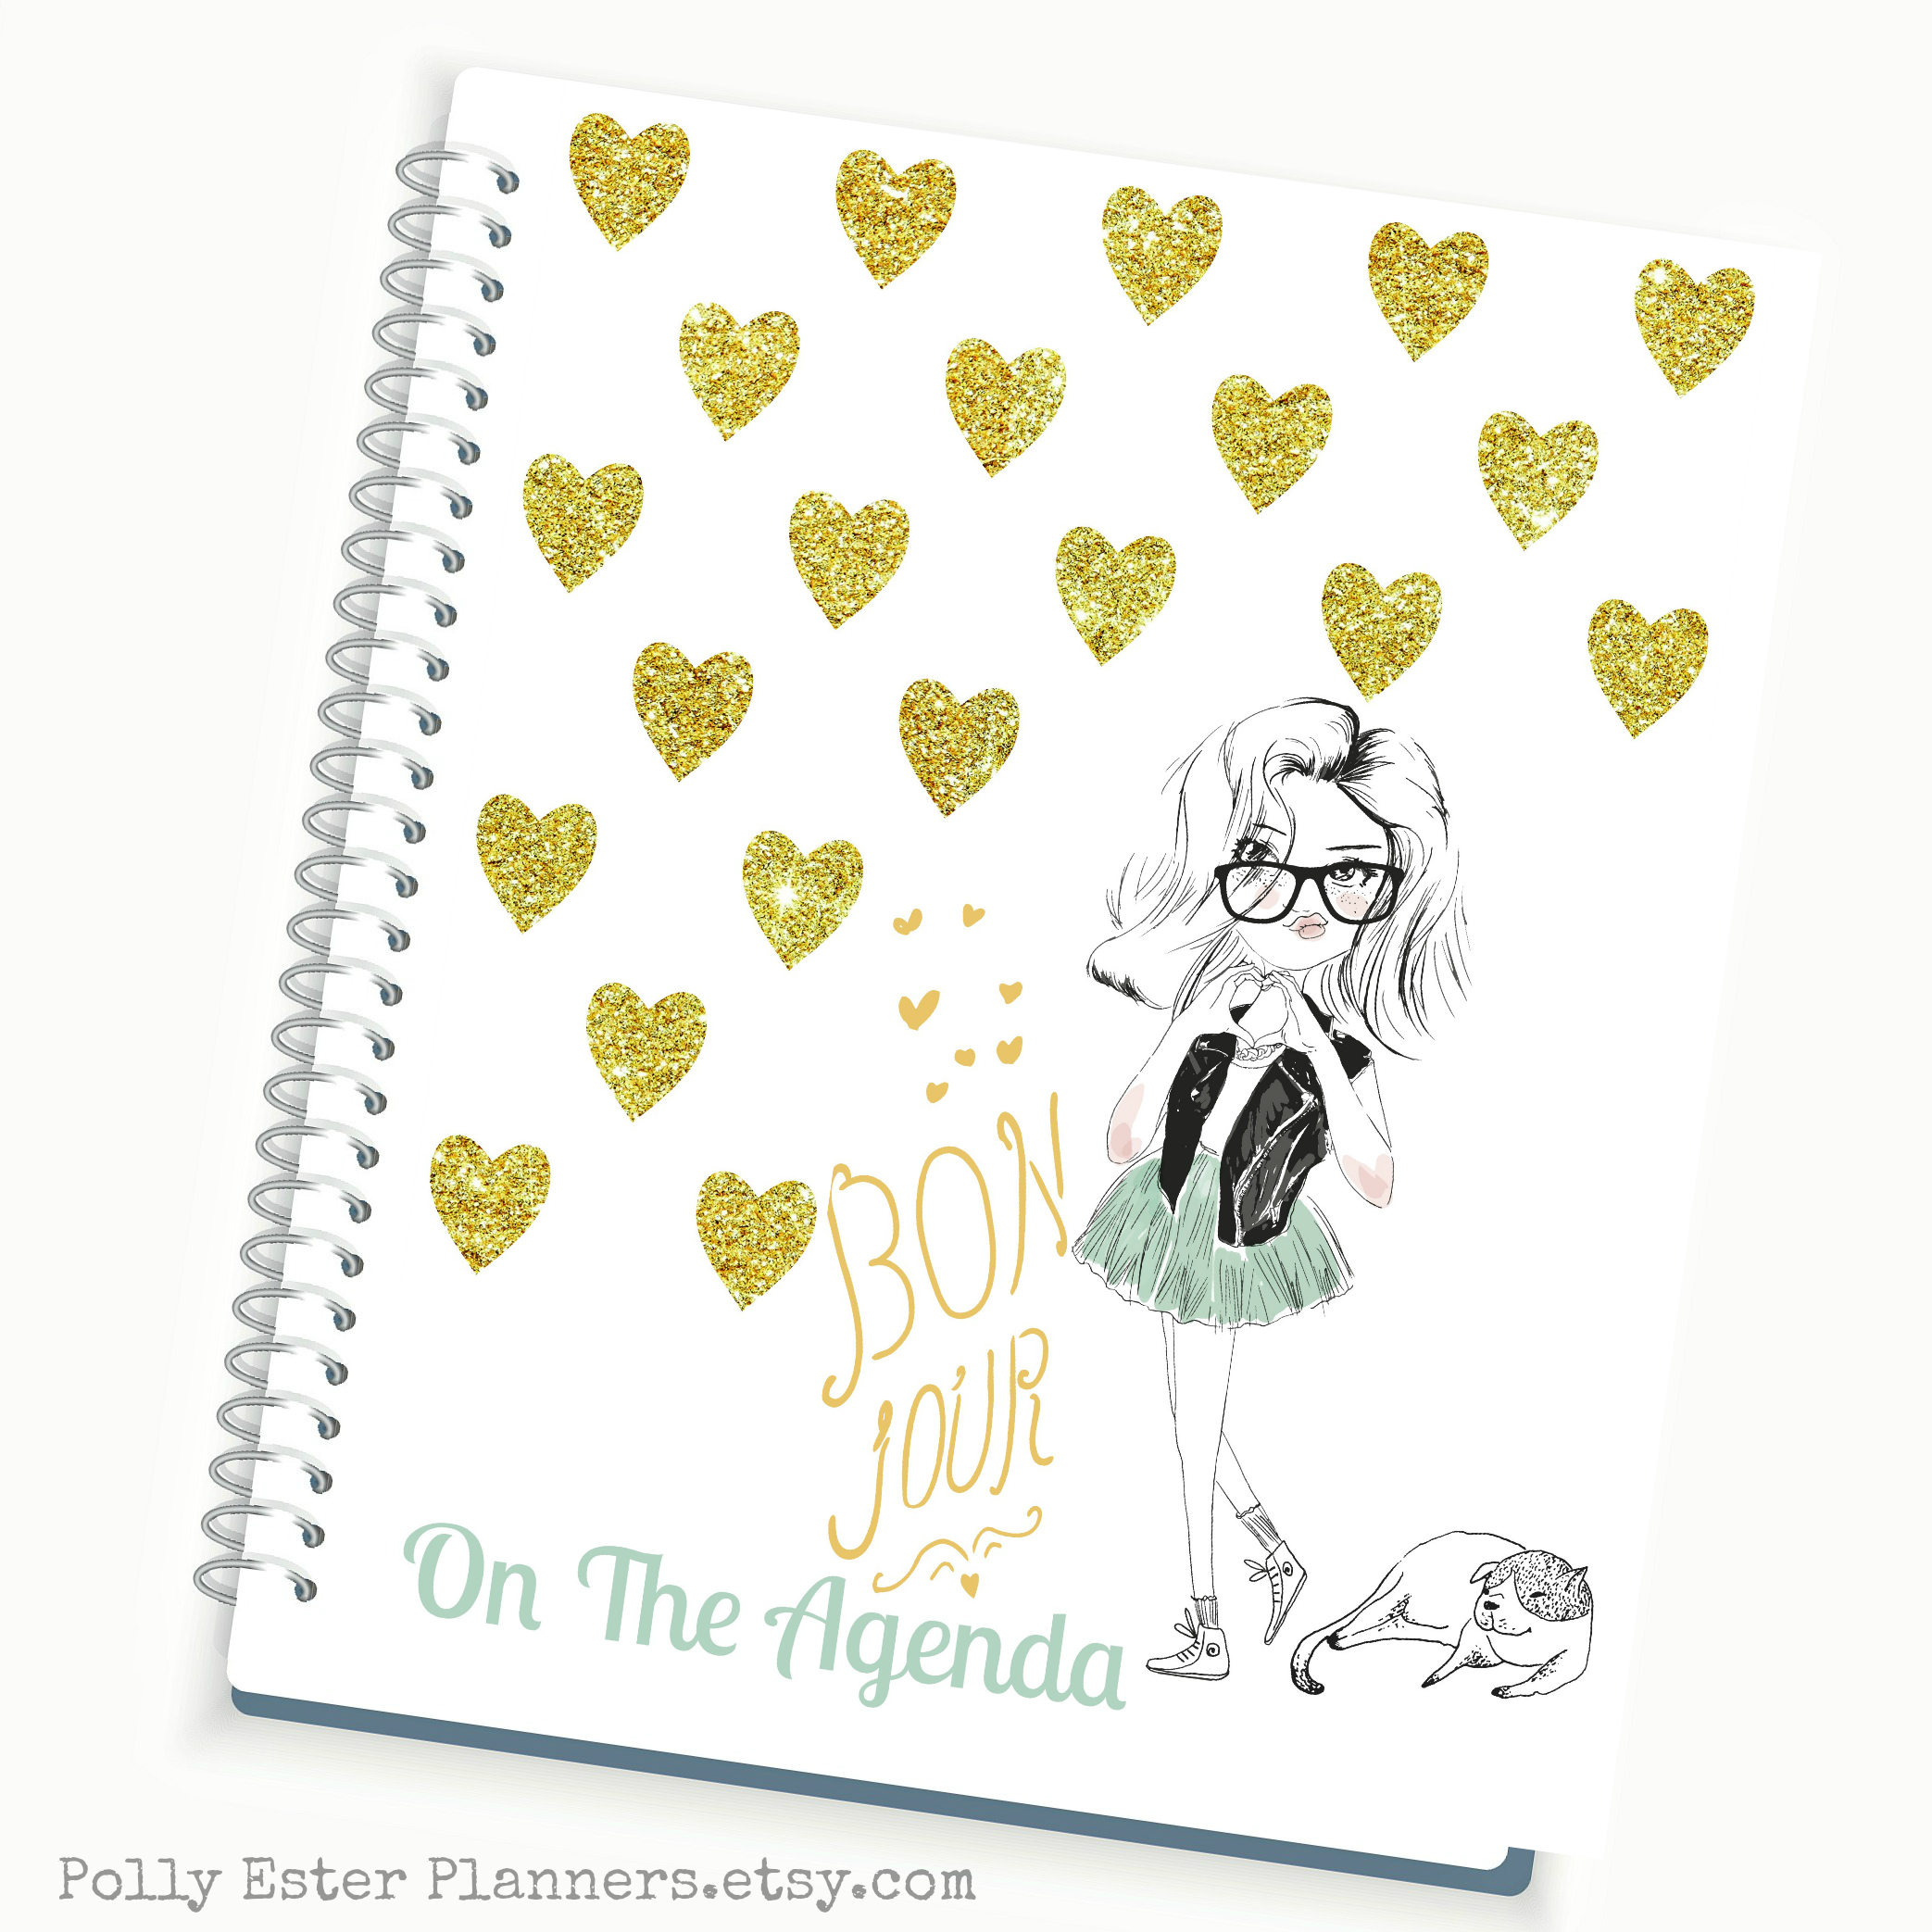 Planner Daily Planner Personalized Planner Weekly Planner - Custom daily planner